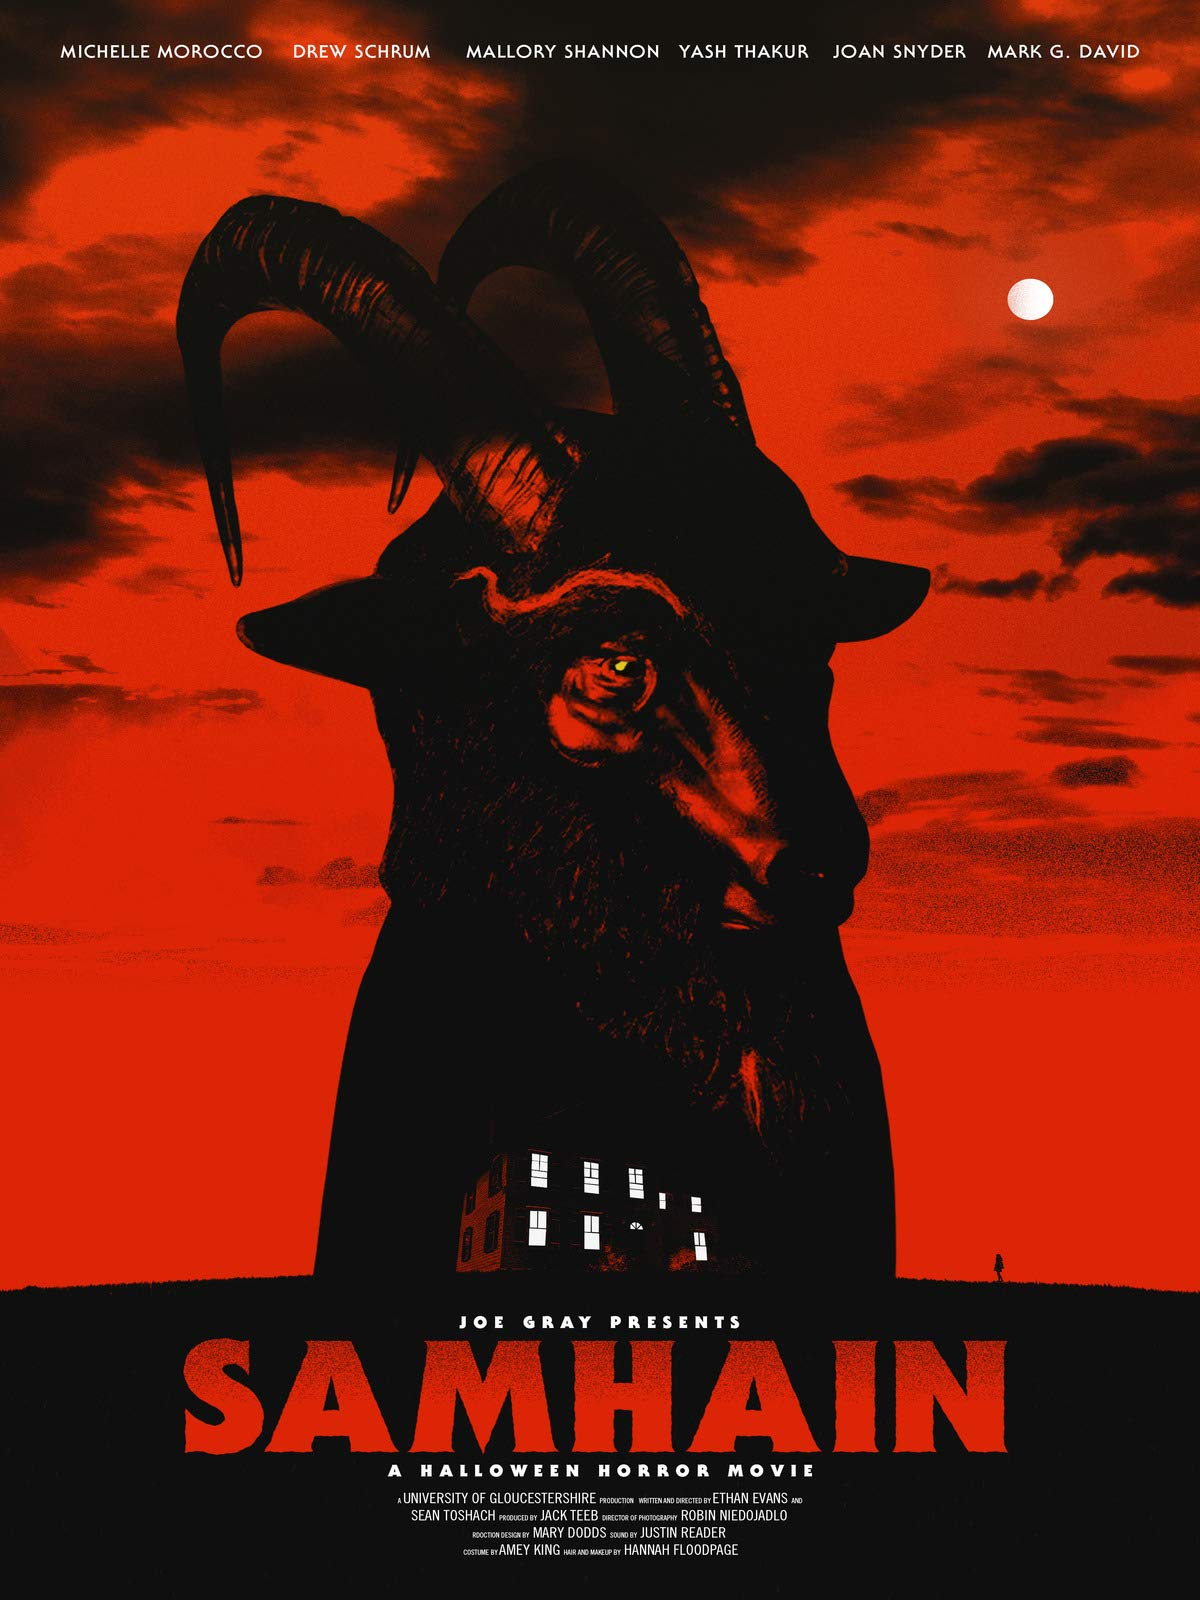 Samhain Short Horror Film